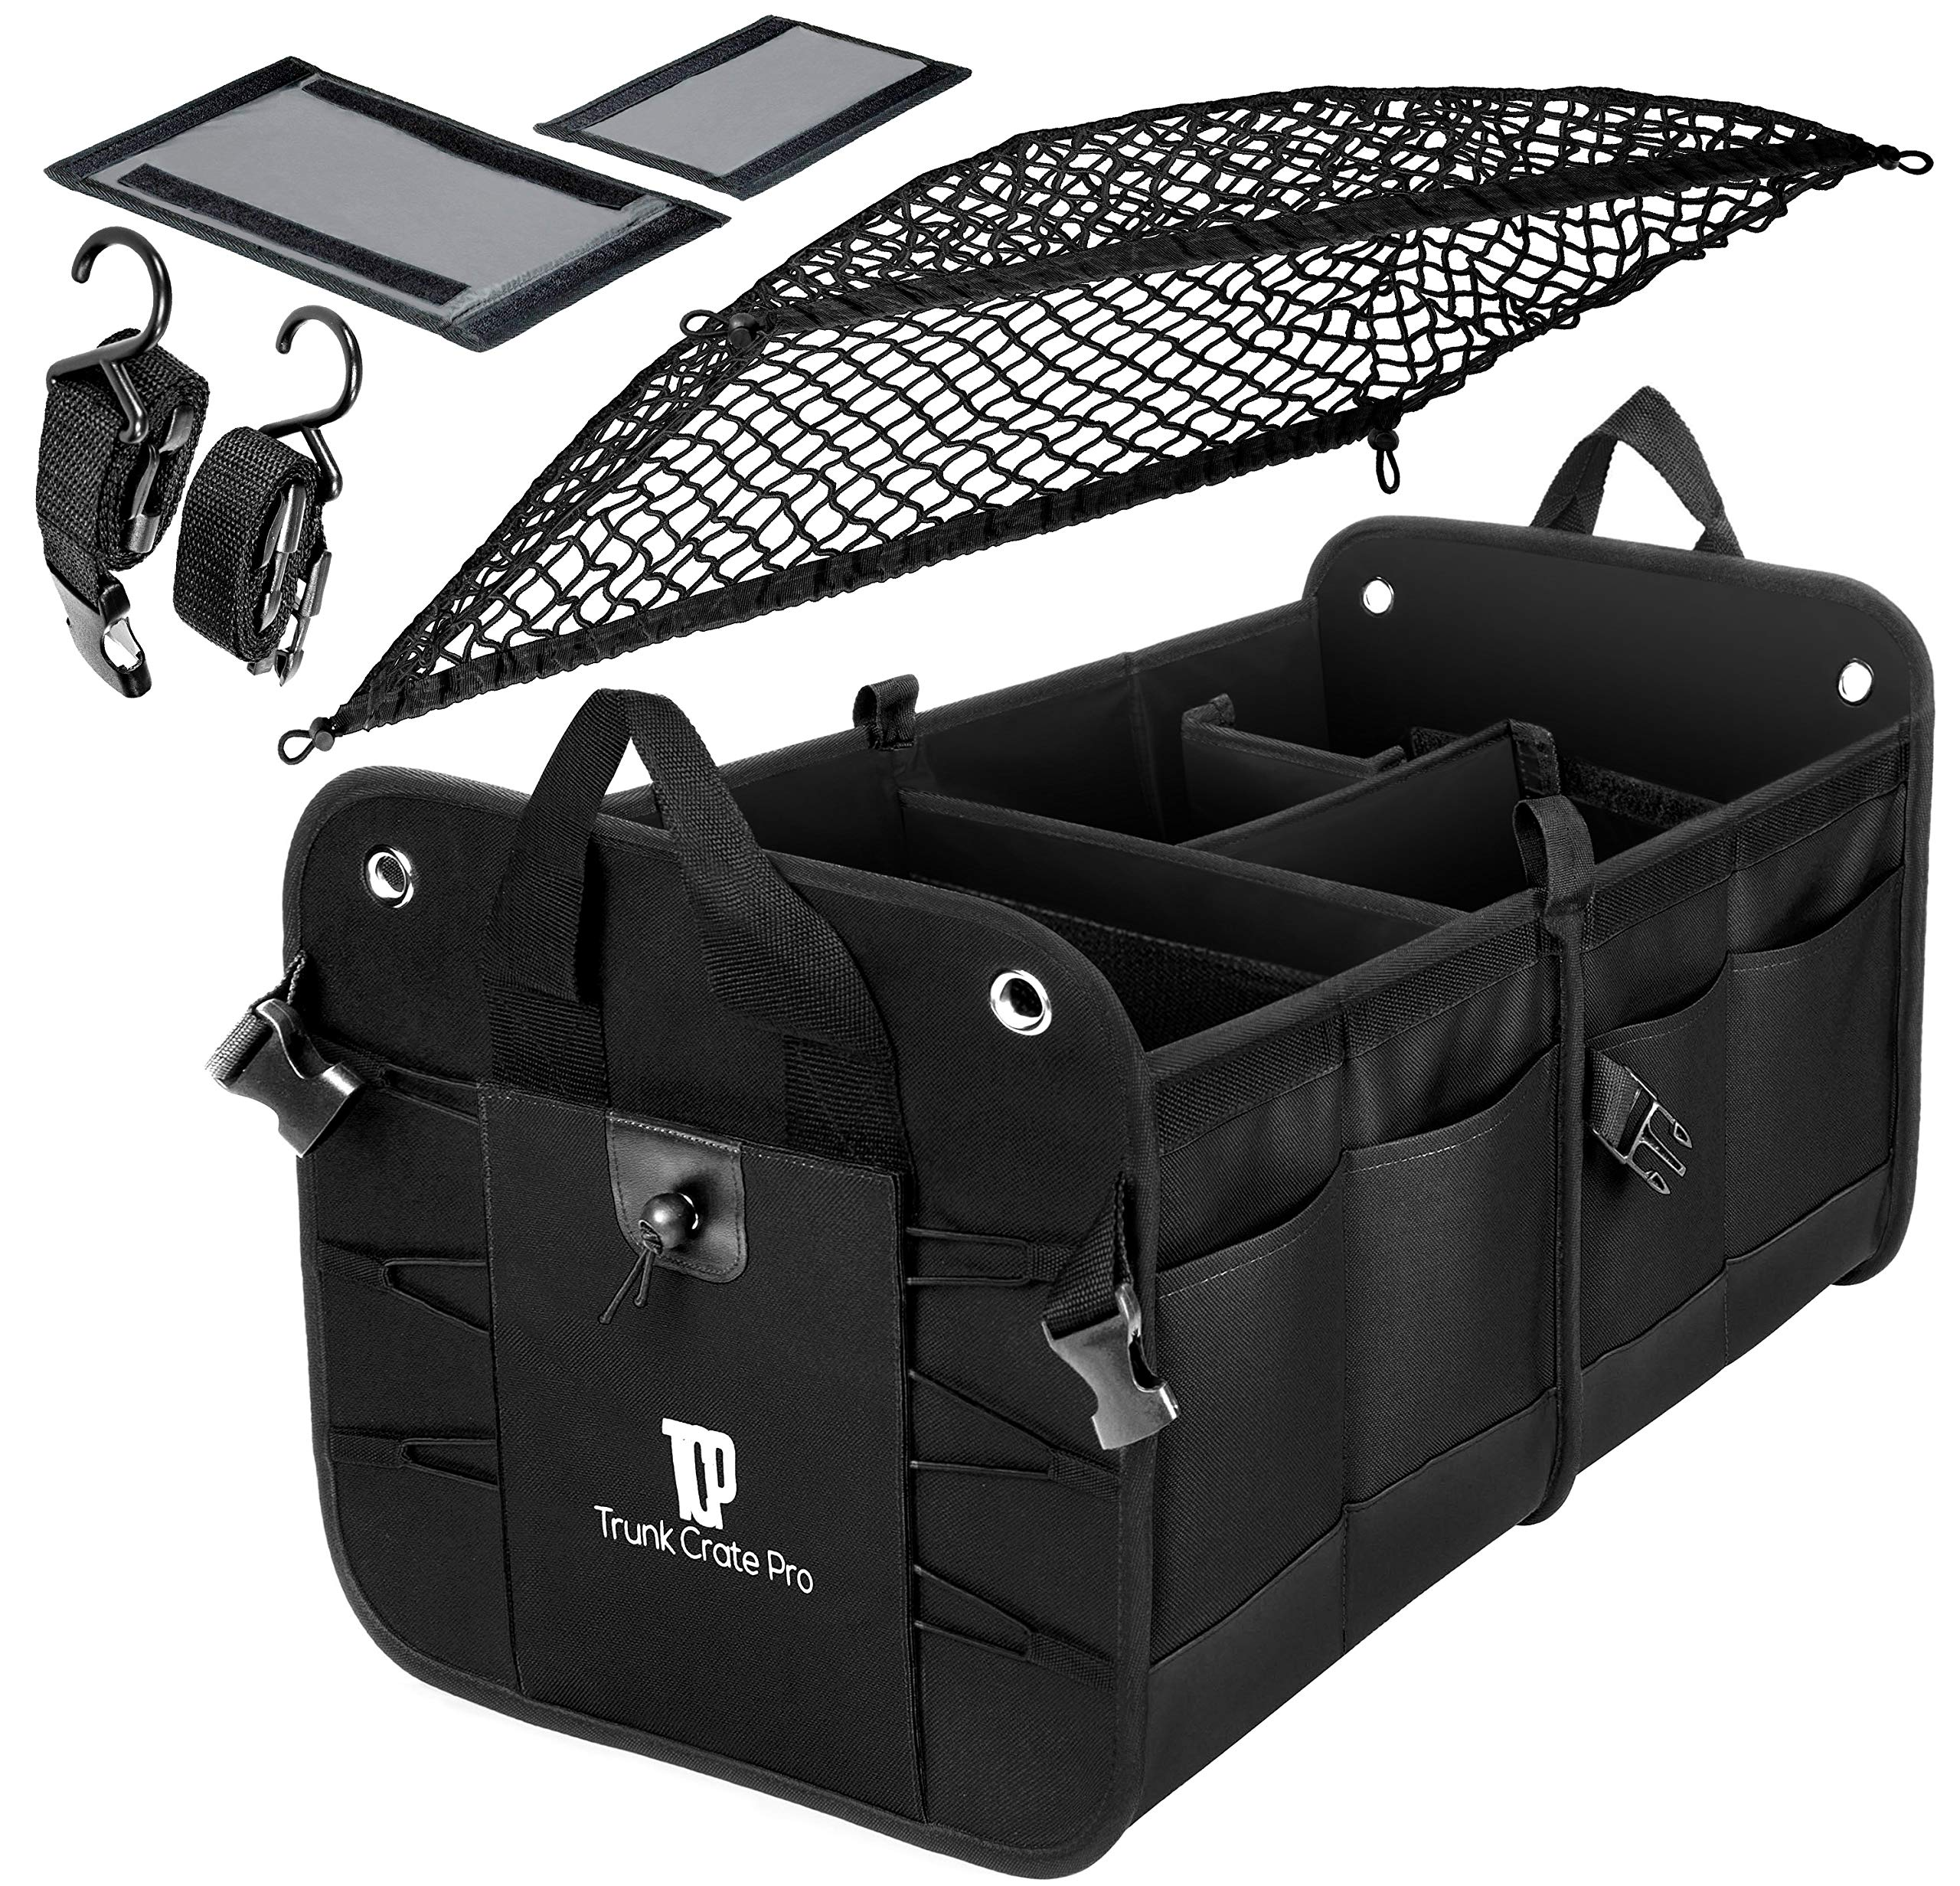 Minivan Adjustable Compartments Foldable Portable Trunk Organizer with lid Trunk Organizer for SUV Truck Heavy Duty Durable Car Organizer Removable Flexible Storage Groceries Bag BLACK, 2 IN 1